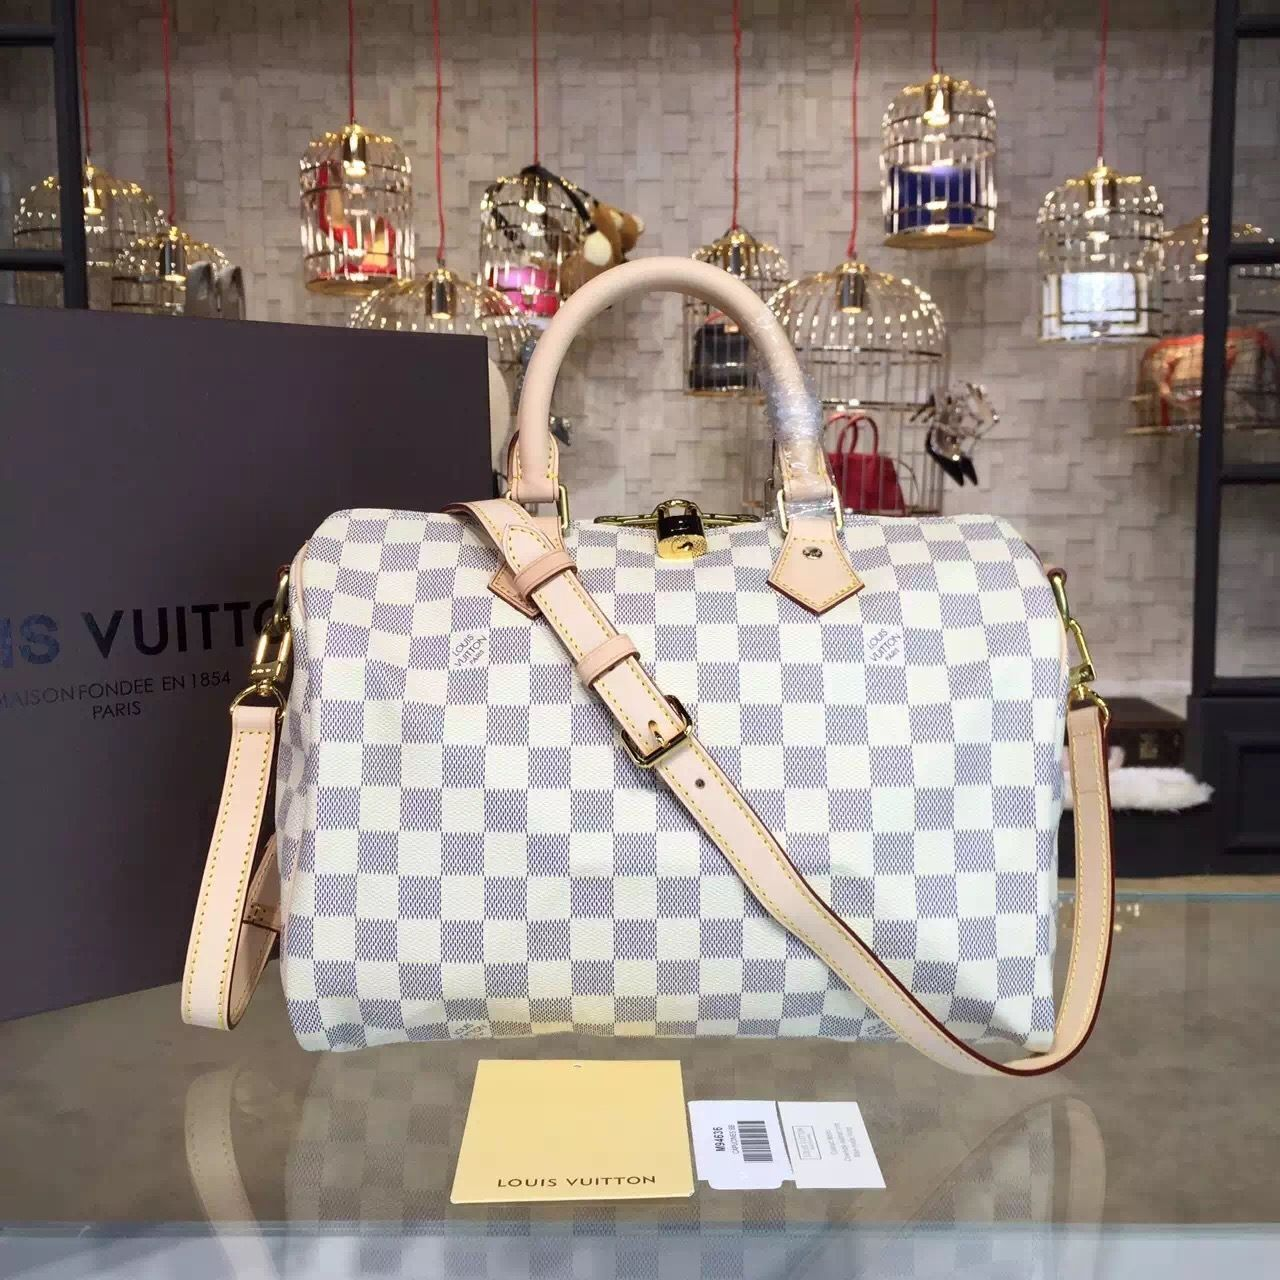 ceec44ab4574 Louis Vuitton Speedy Bandouliere 30 Damier Azur Canvas Spring Summer 2015  Collection N41373 - My Luxe Fashions